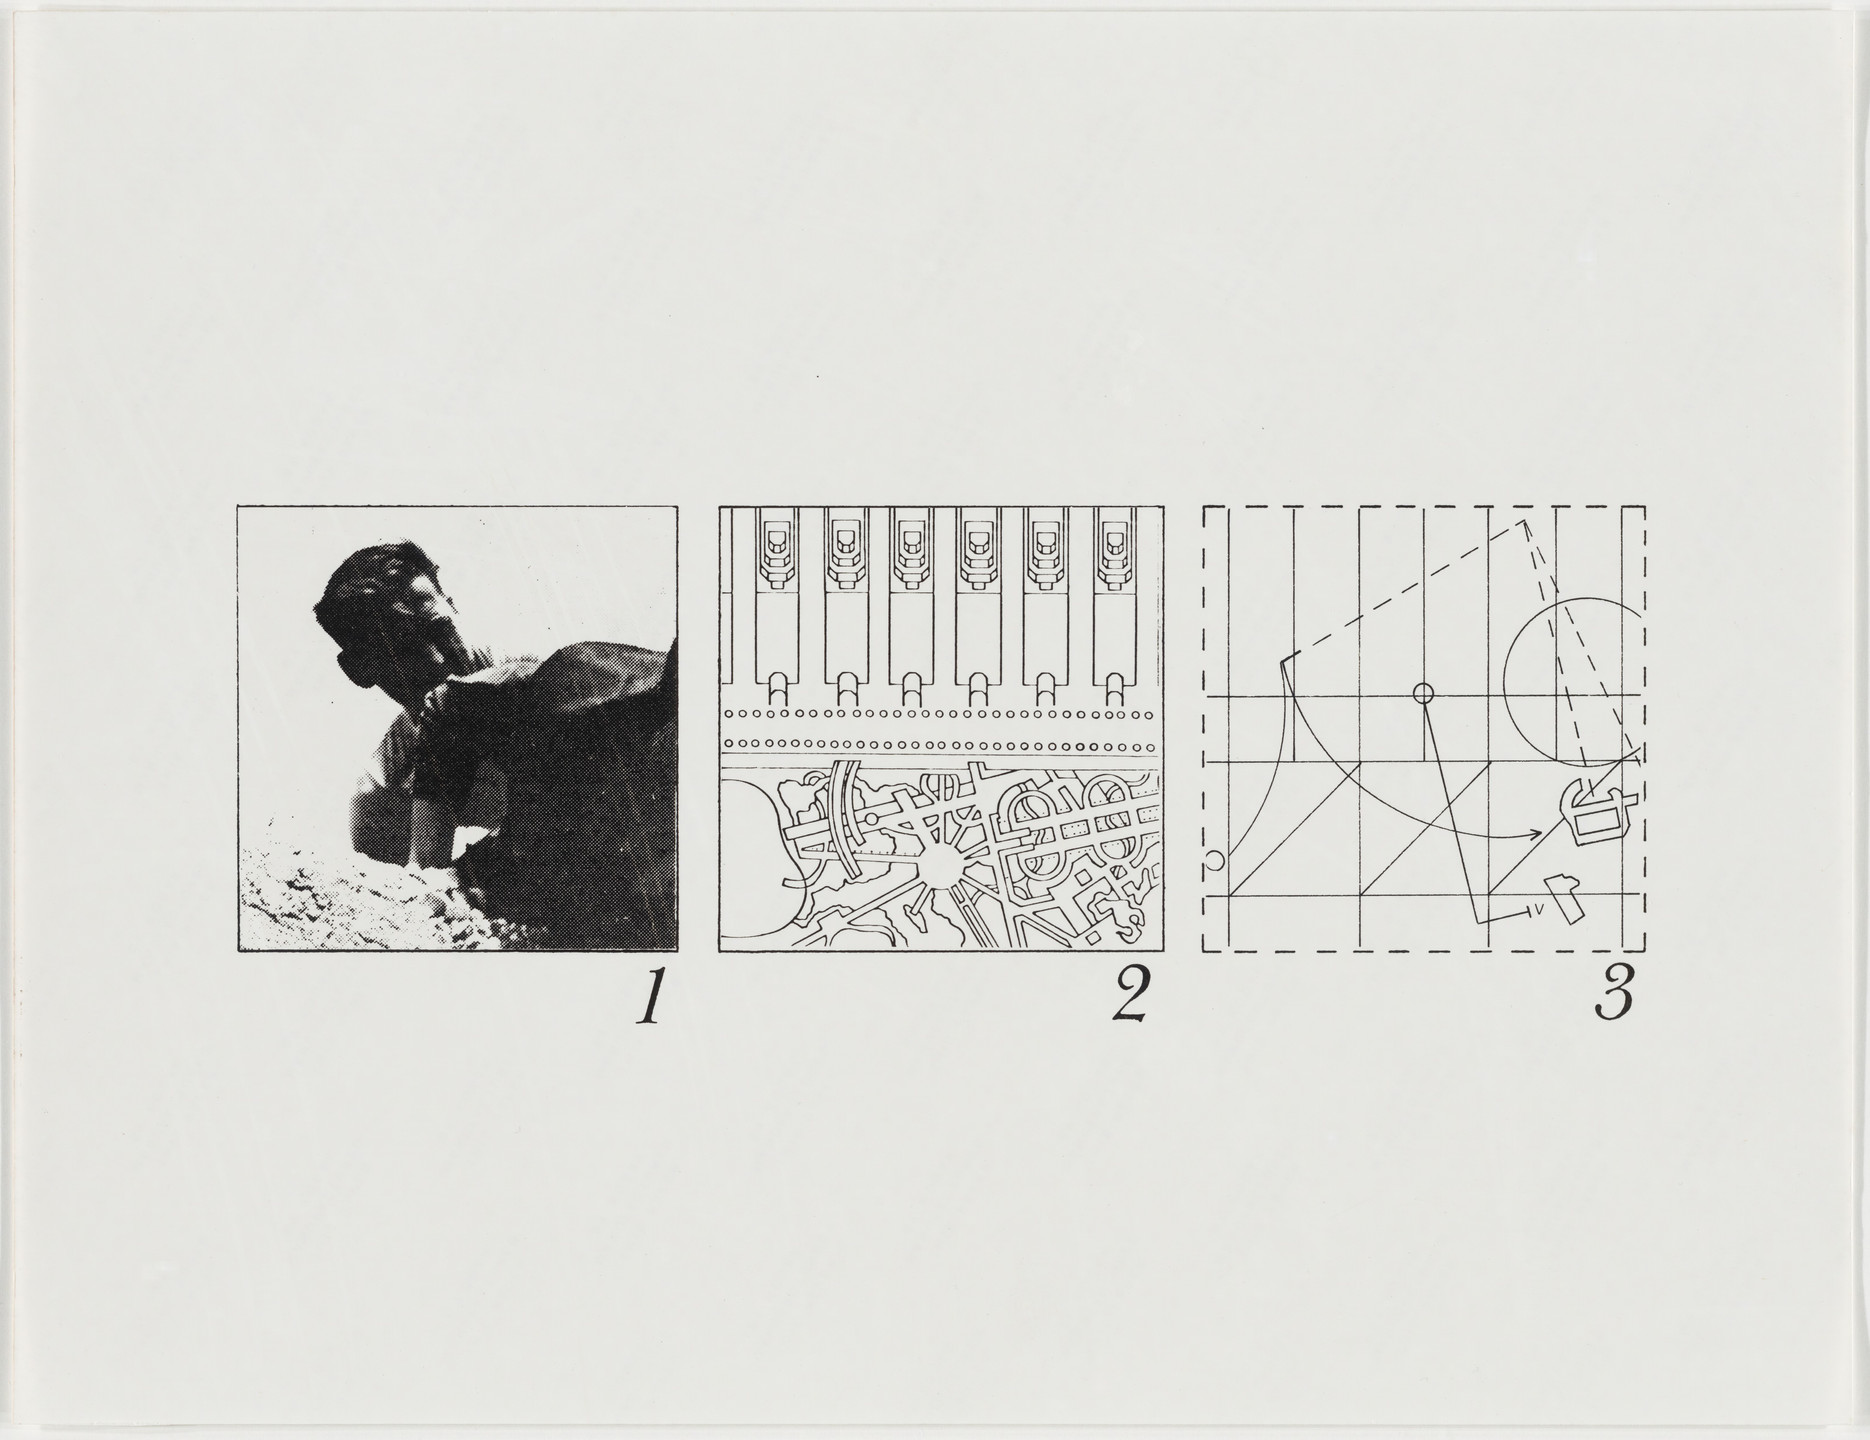 Bernard Tschumi. The Manhattan Transcripts Project, New York, New York, Episode 1: The Park. 1976-77